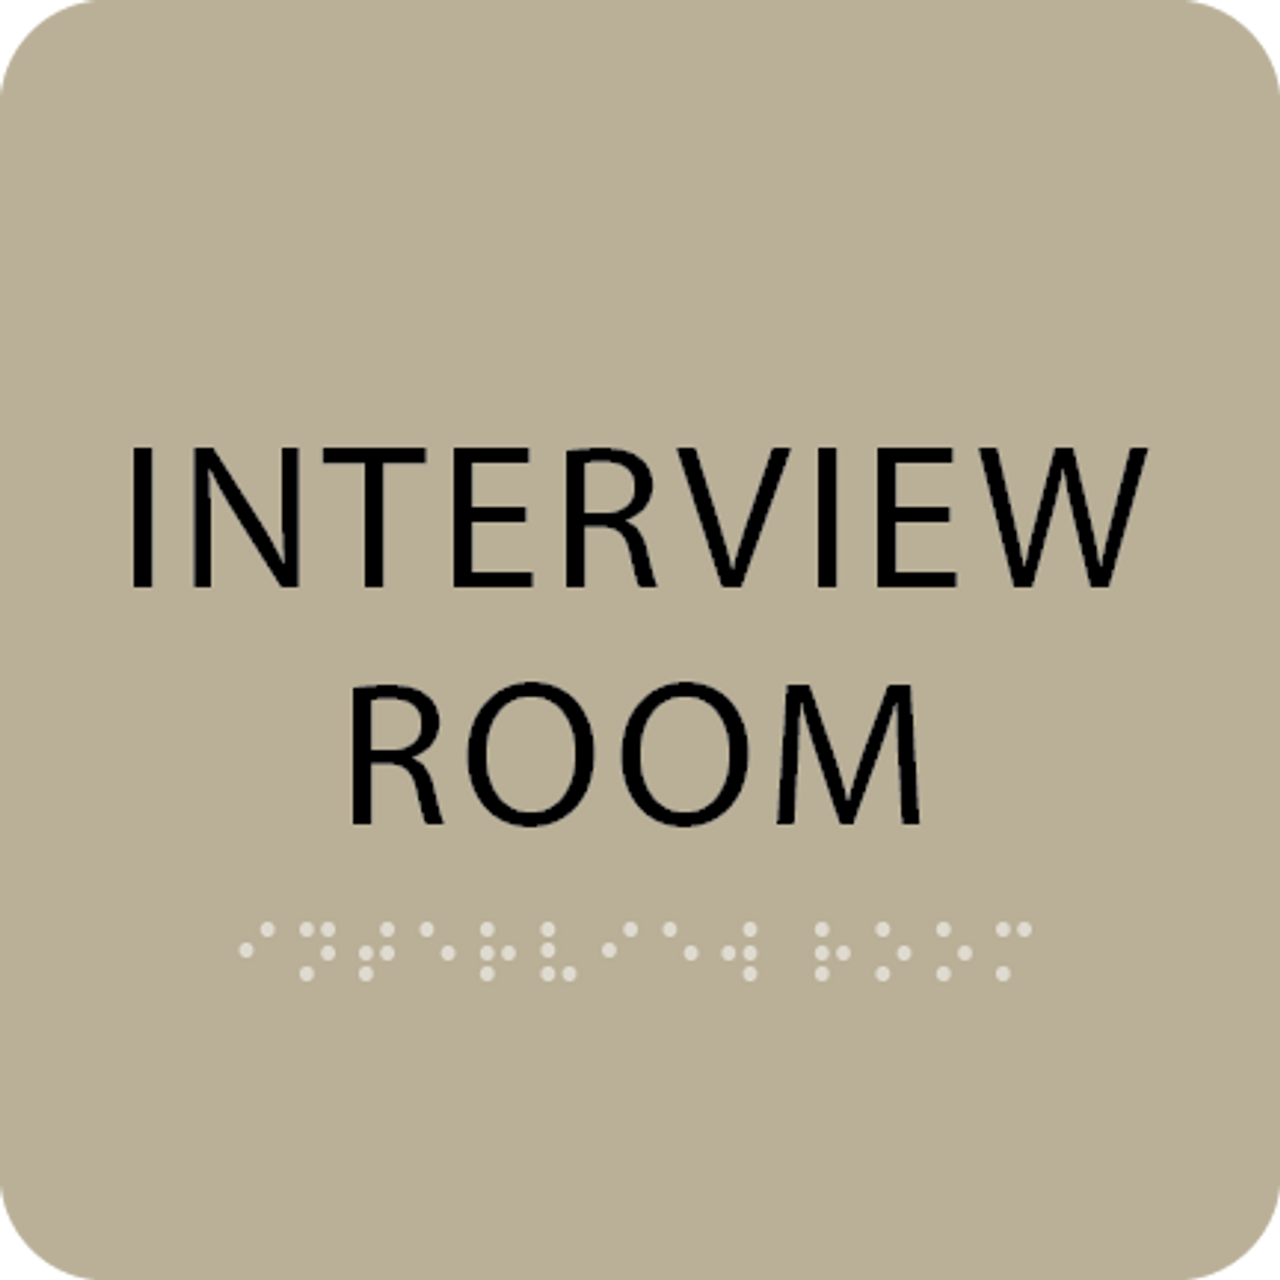 Brown Interview Room Tactile Sign